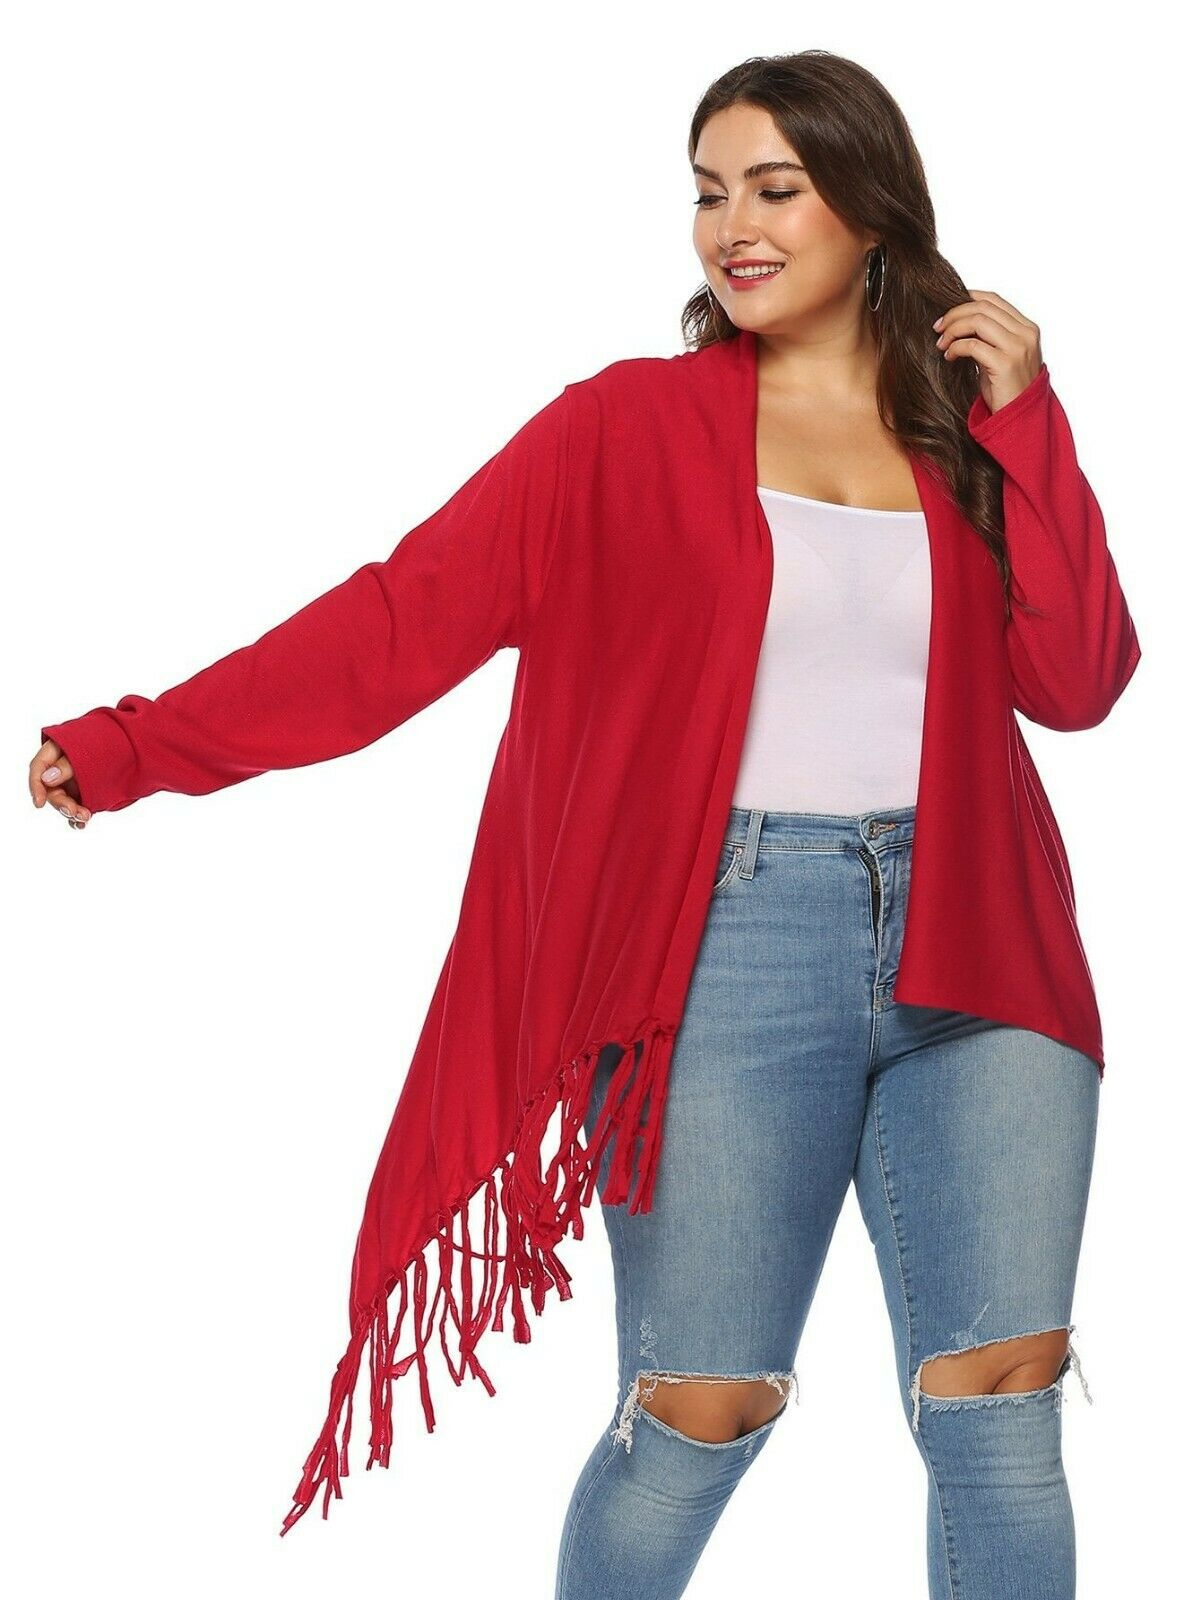 Red Cardigan Knit Coat Poncho Unique Style size 2XL 3XL